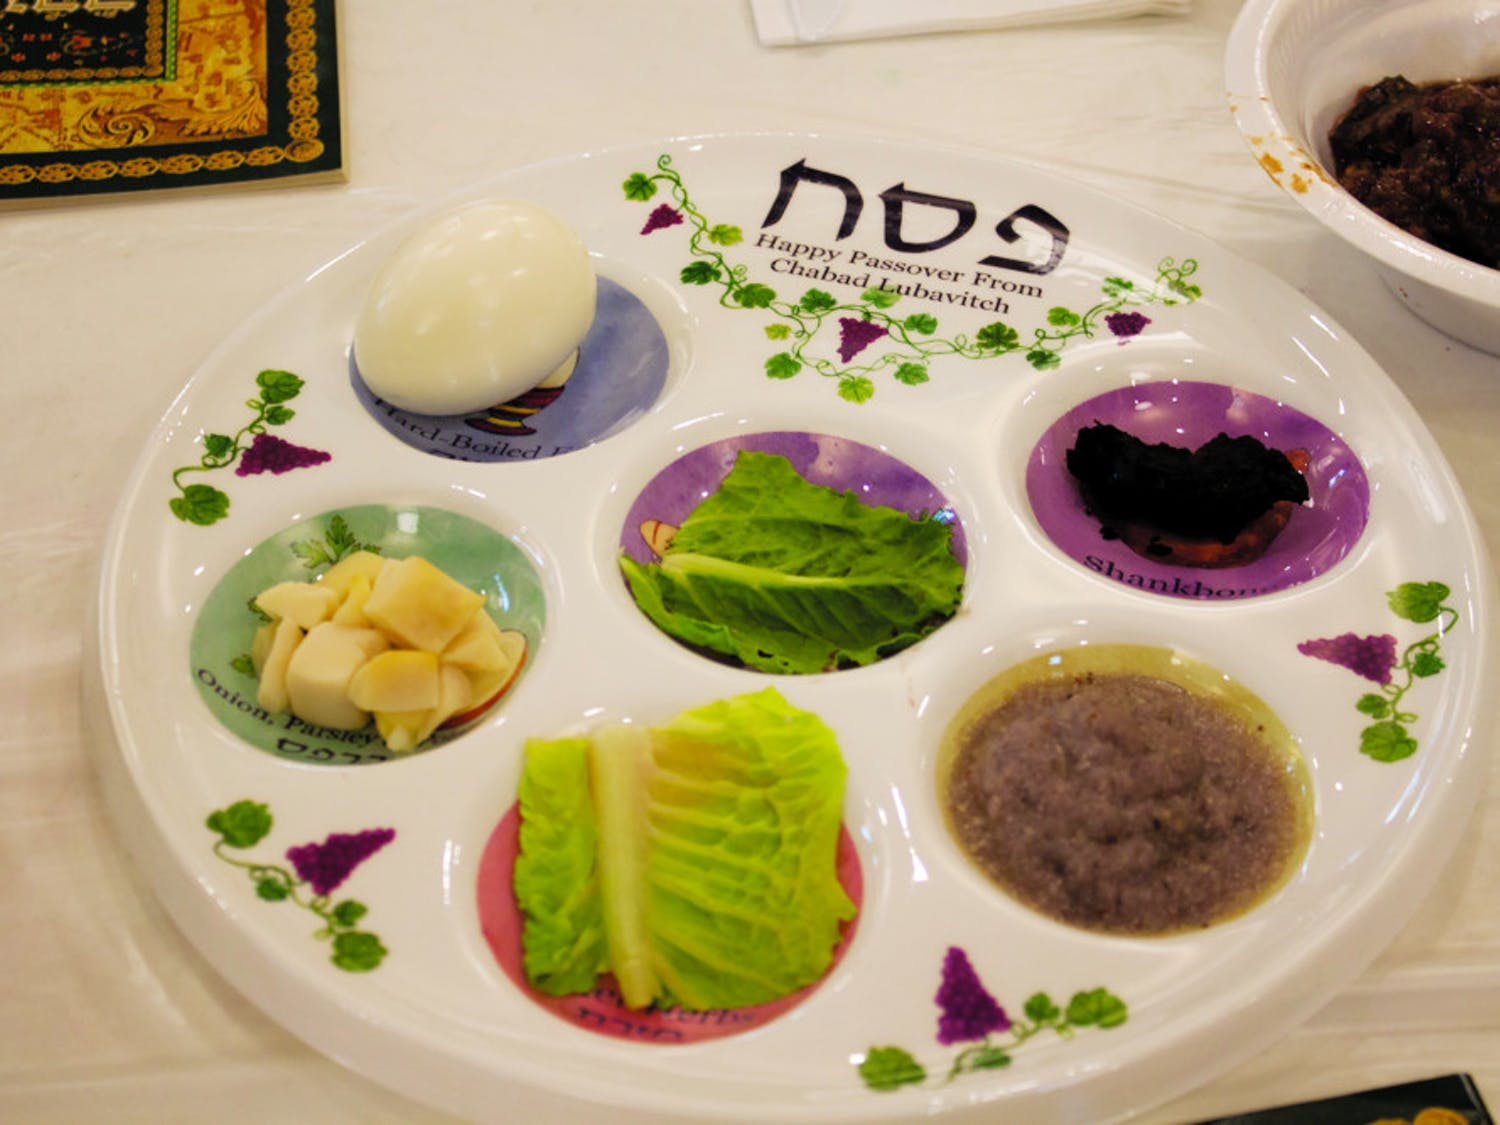 [FILE PHOTO] A seder sits on a table just before Passover begins. Each ingredient on the plate represents a different part of the story of how the Israelites were liberated from slavery in Egypt thousands of years ago, said Gabriel Ruiz, a UF Health Shands Hospital information technology analyst.